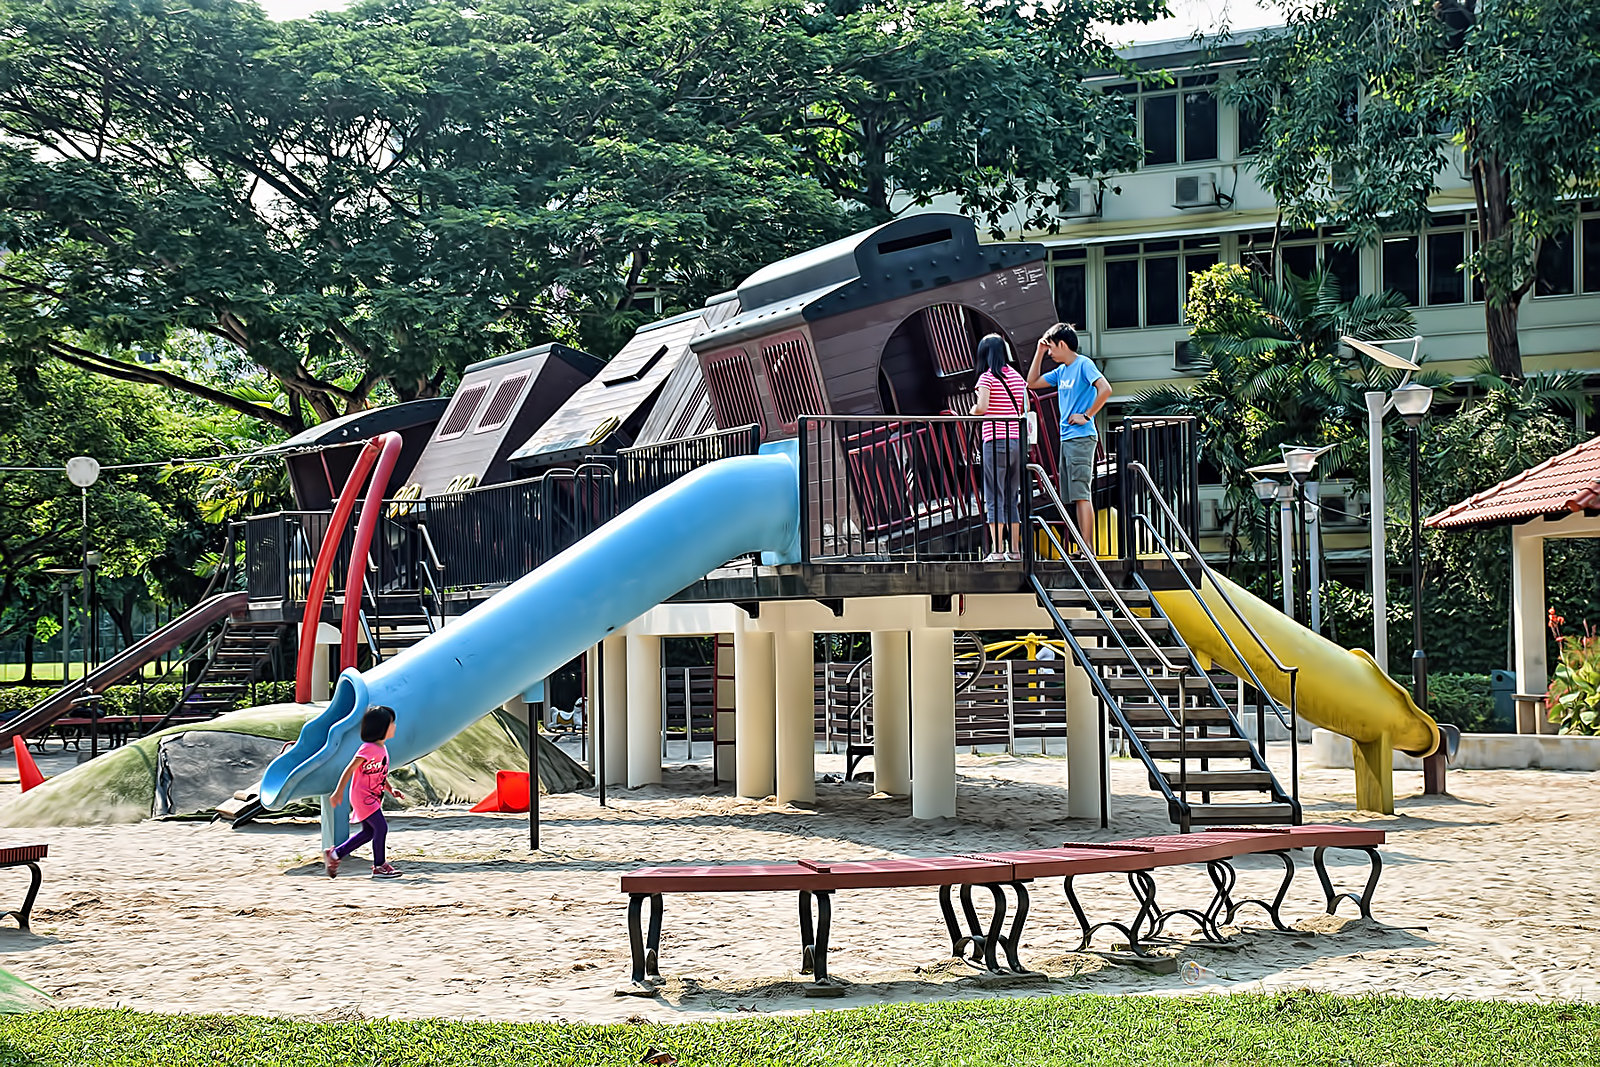 tiong bahru park outdoor playground singapore